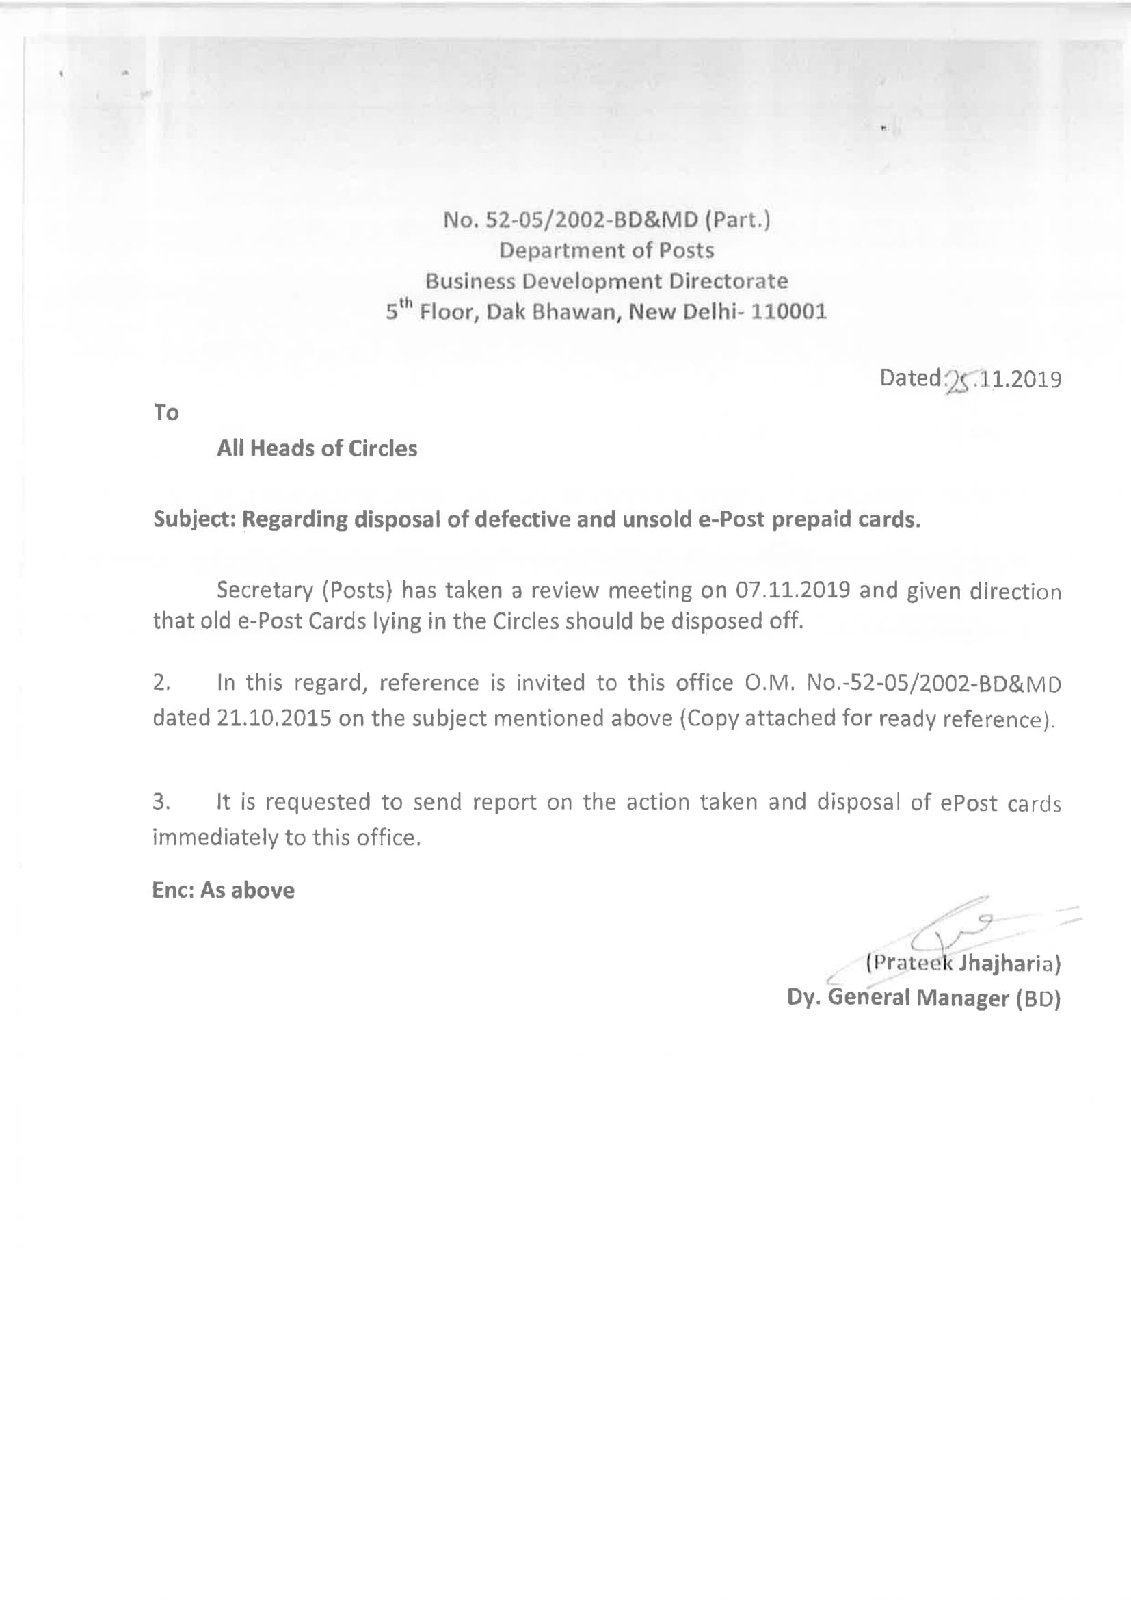 Disposal of Defective / Unsold e-Post